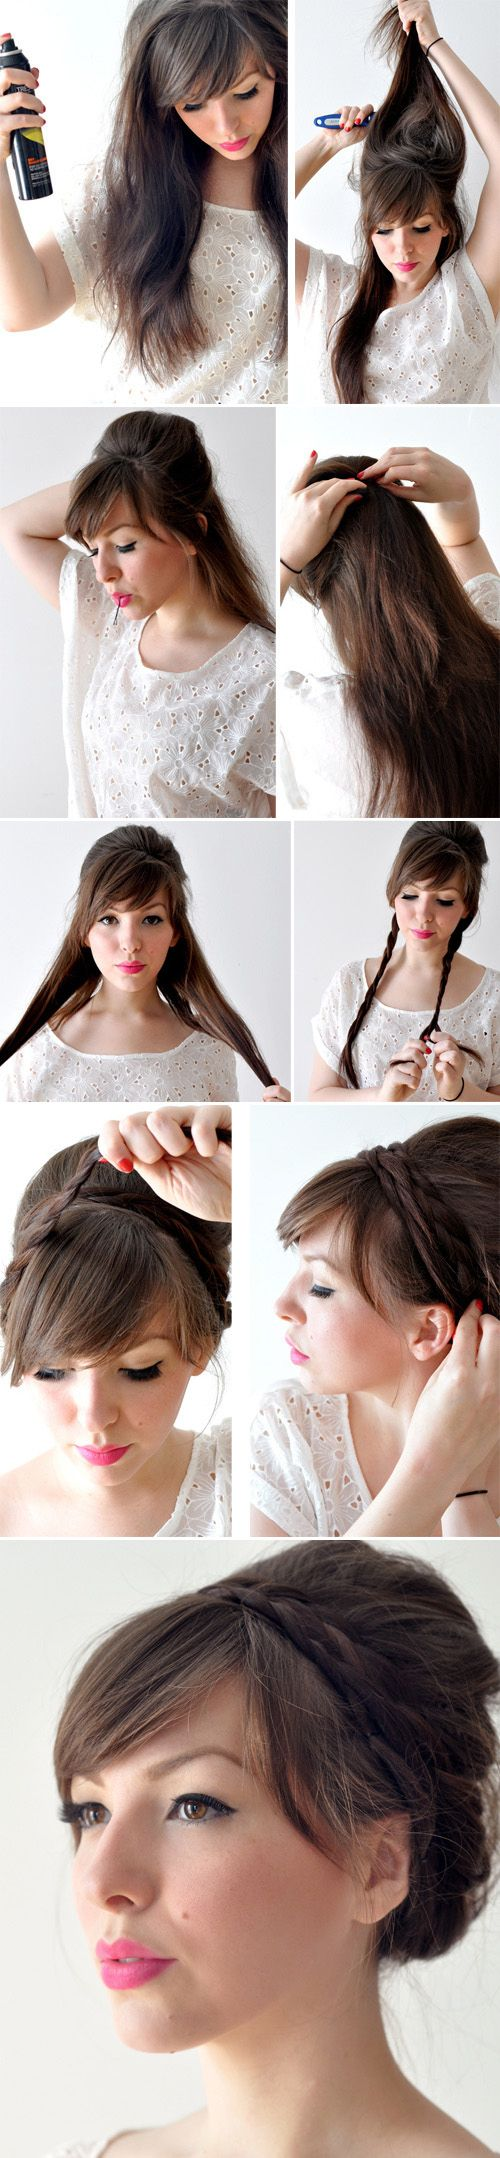 27 Top Do It Yourself Hair Styles!